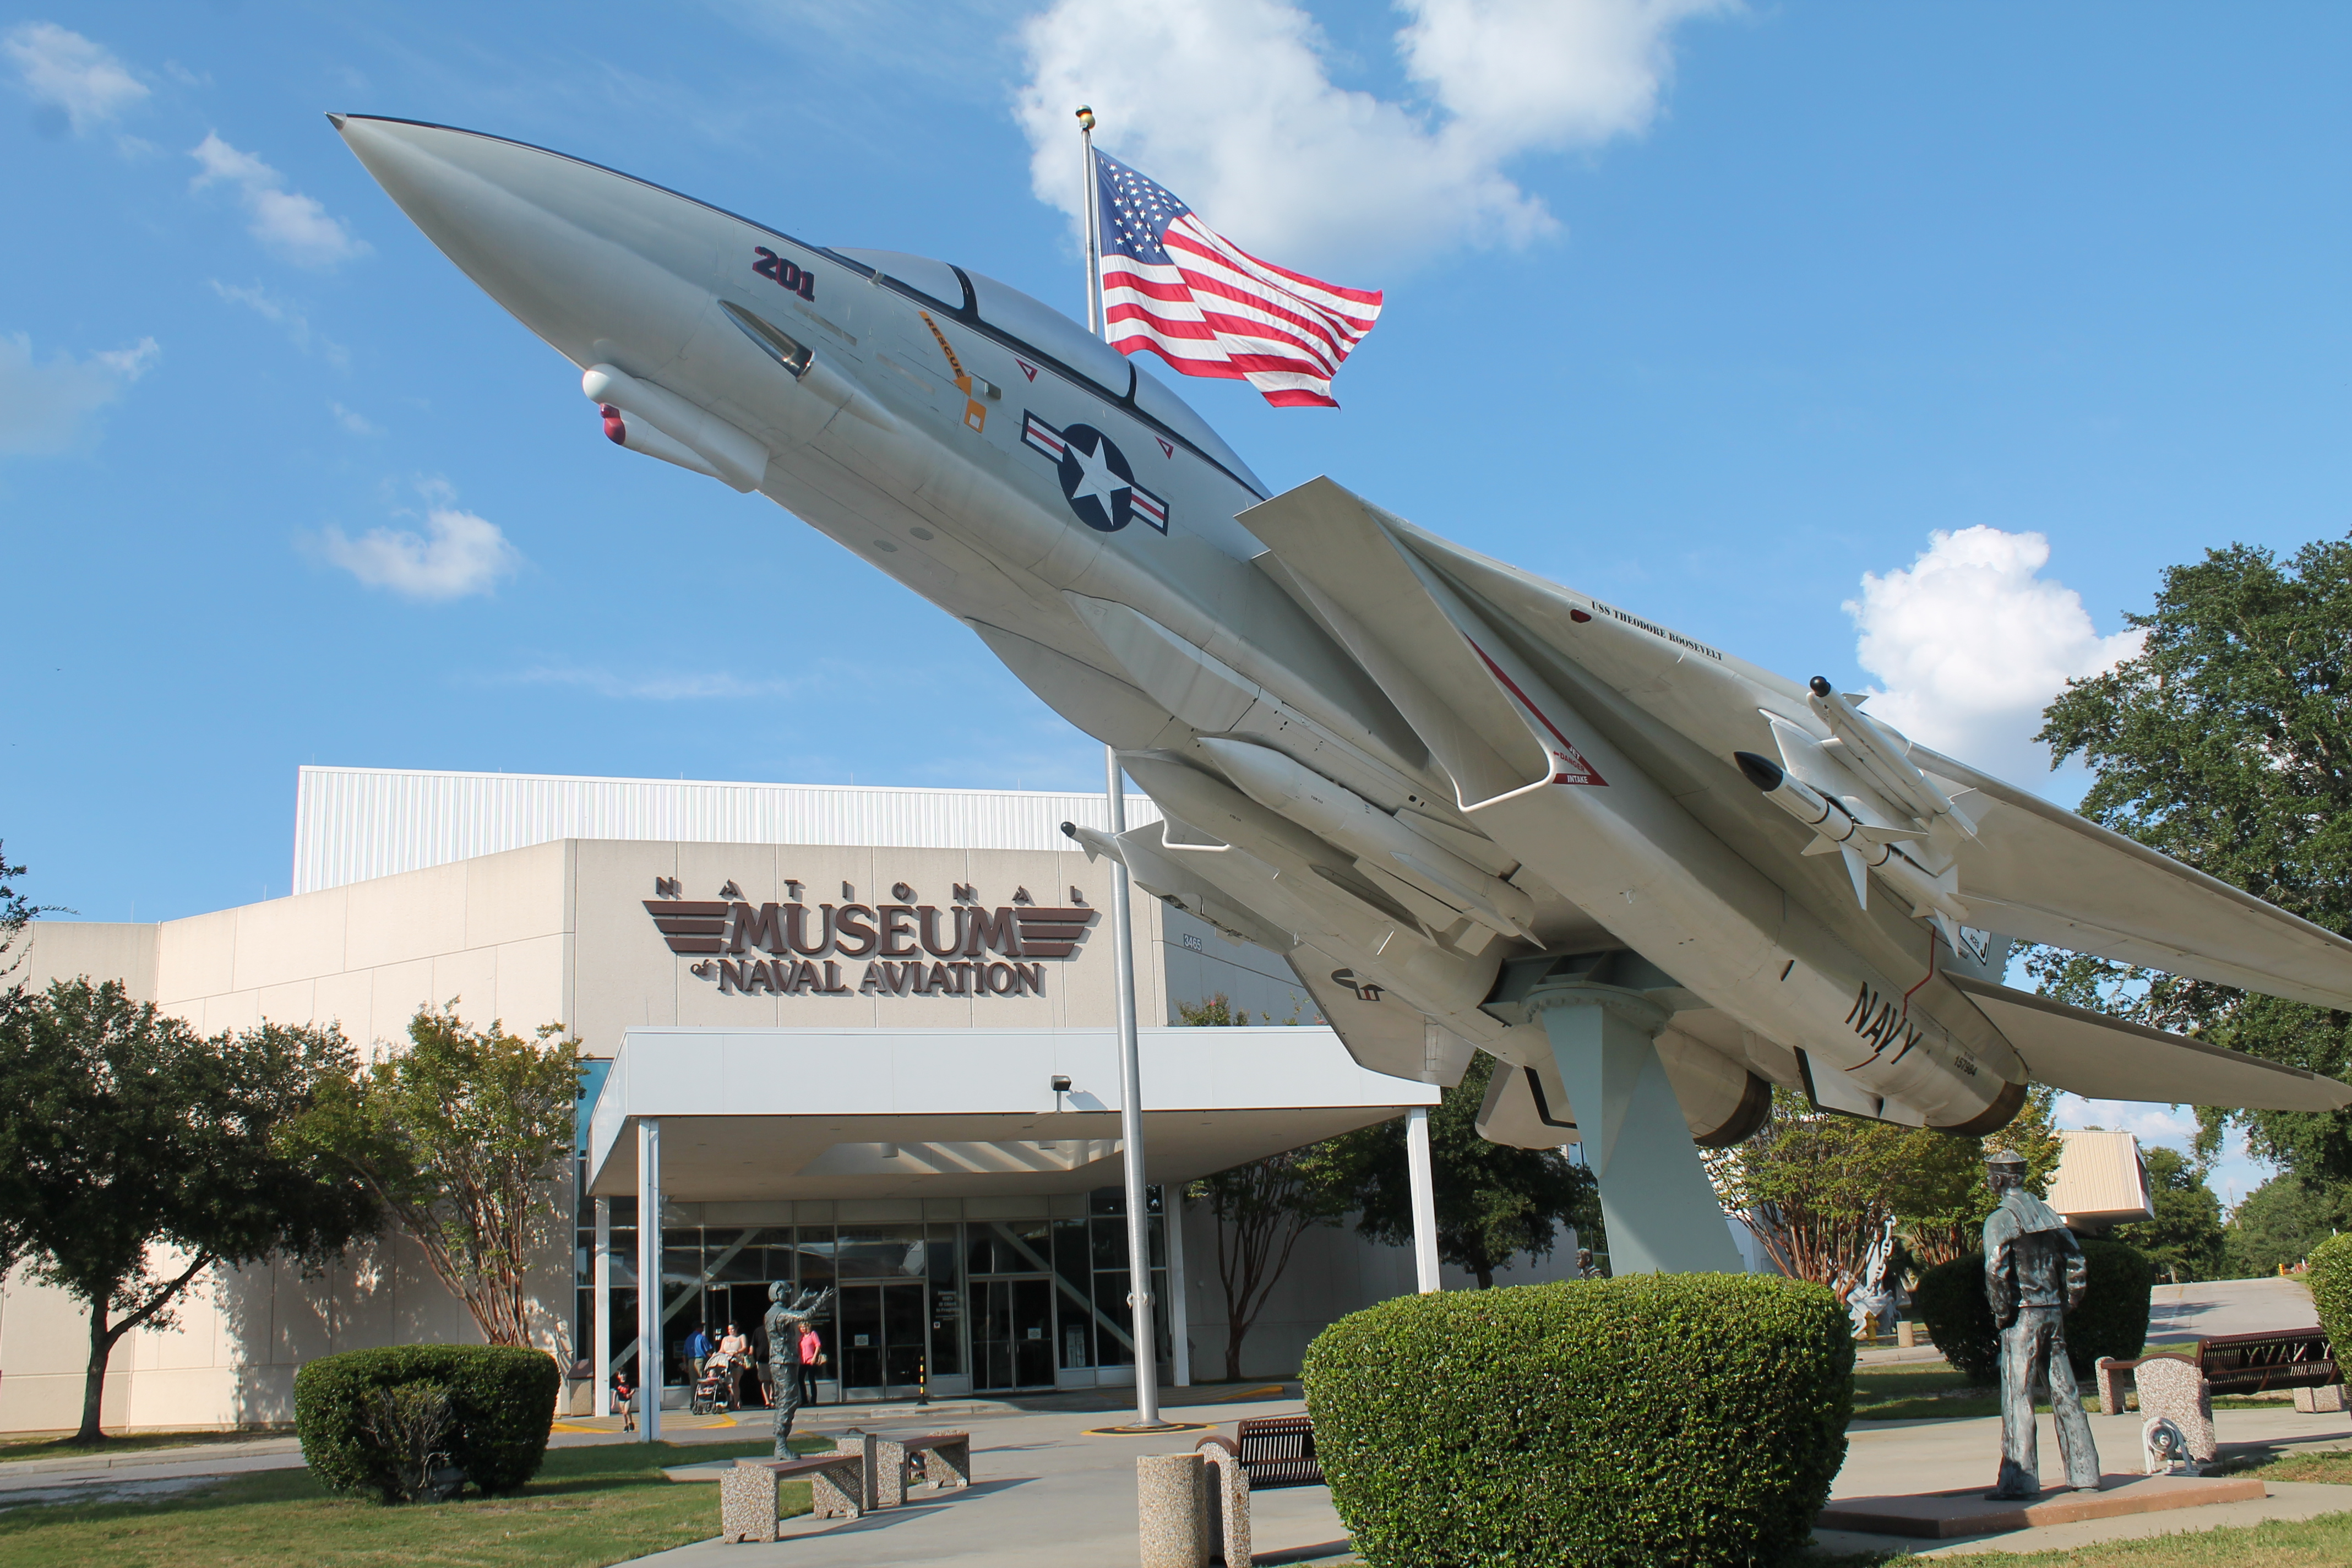 National Naval Aviation Museum has a Phase 1 reopening.